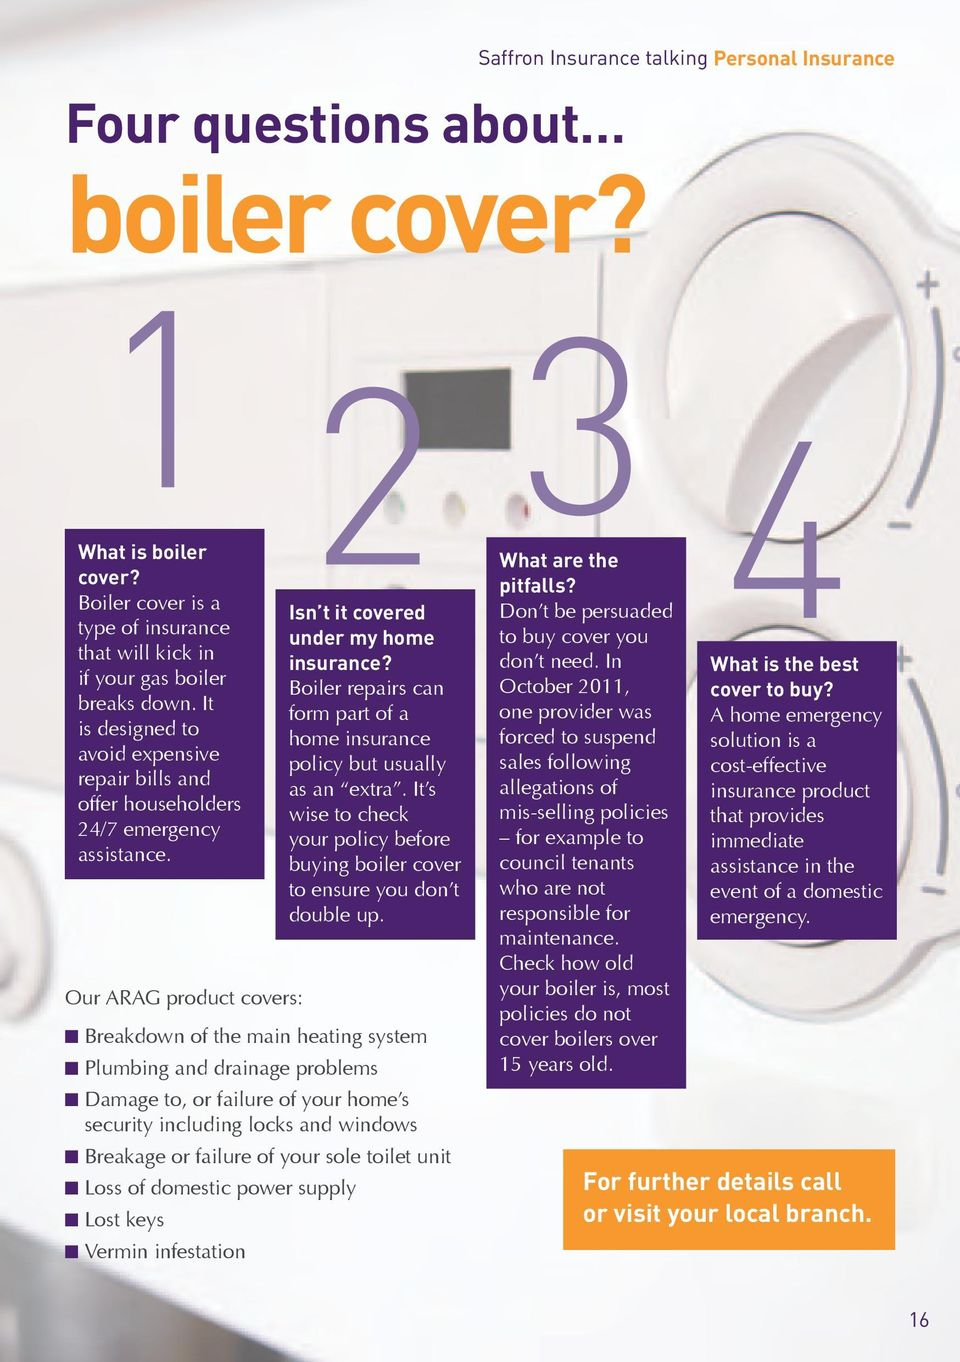 Boiler repairs can form part of a home insurance policy but usually as an extra. It s wise to check your policy before buying boiler cover to ensure you don t double up.